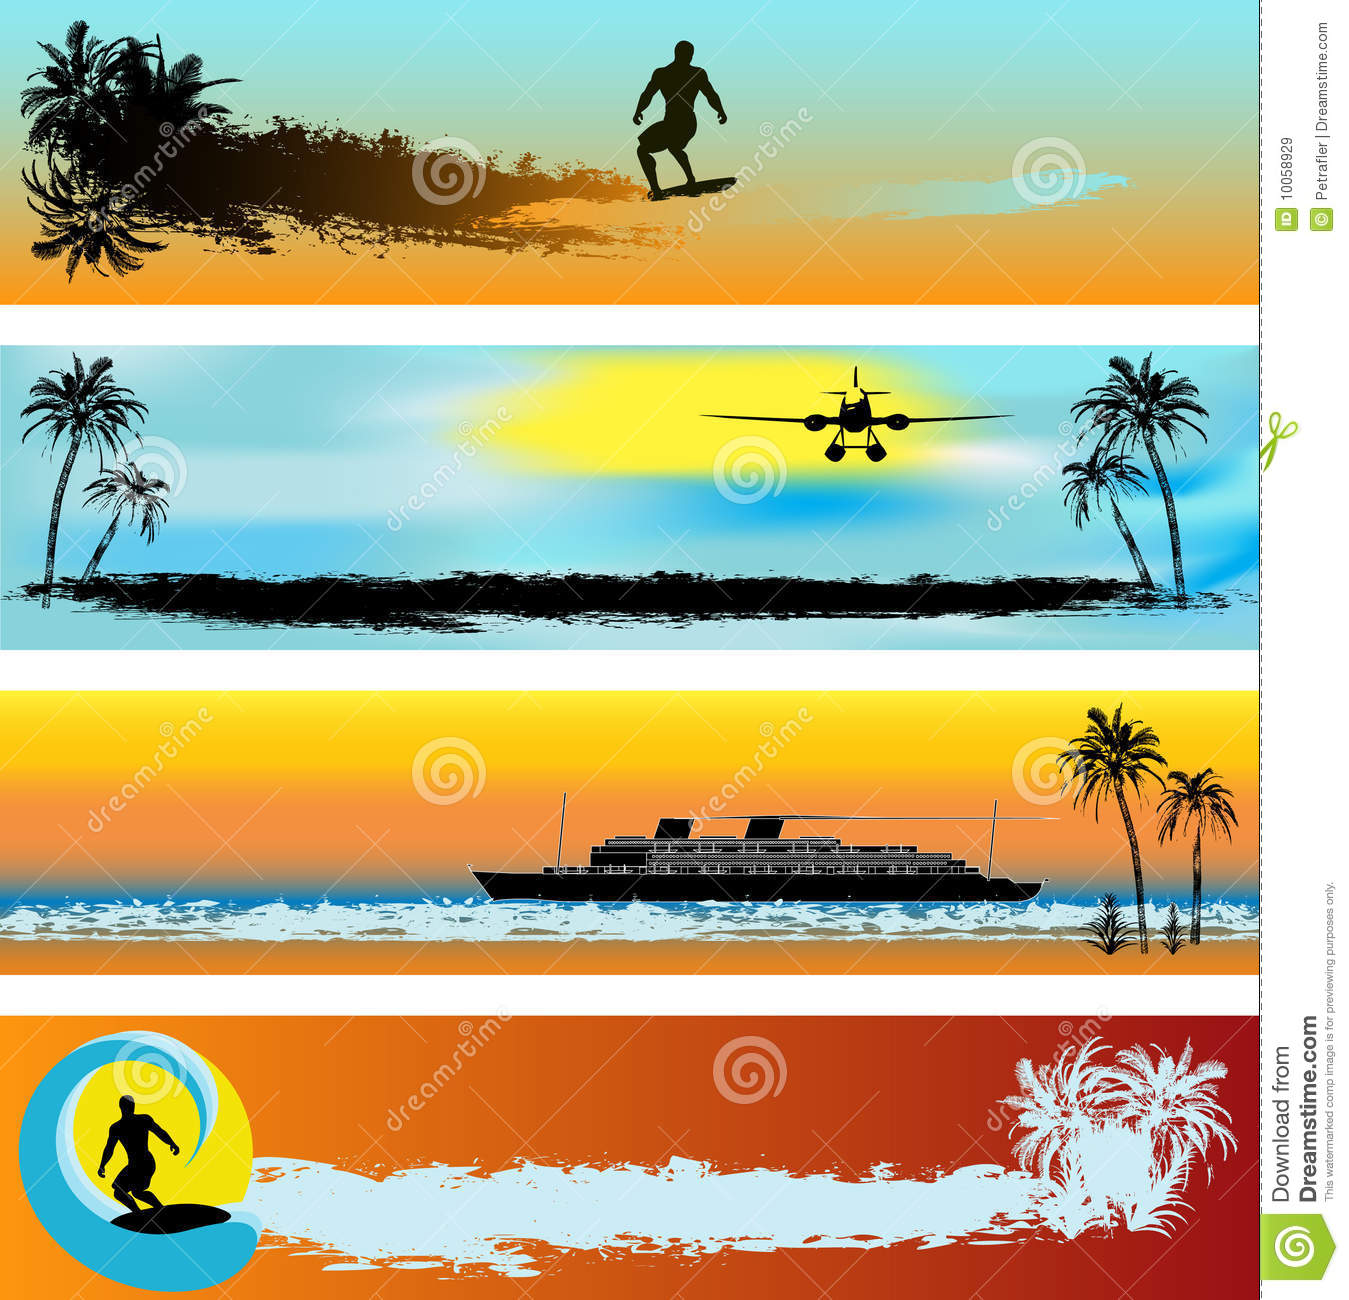 Tropical Beach Web Banner Templates Royalty Free Stock Images ...